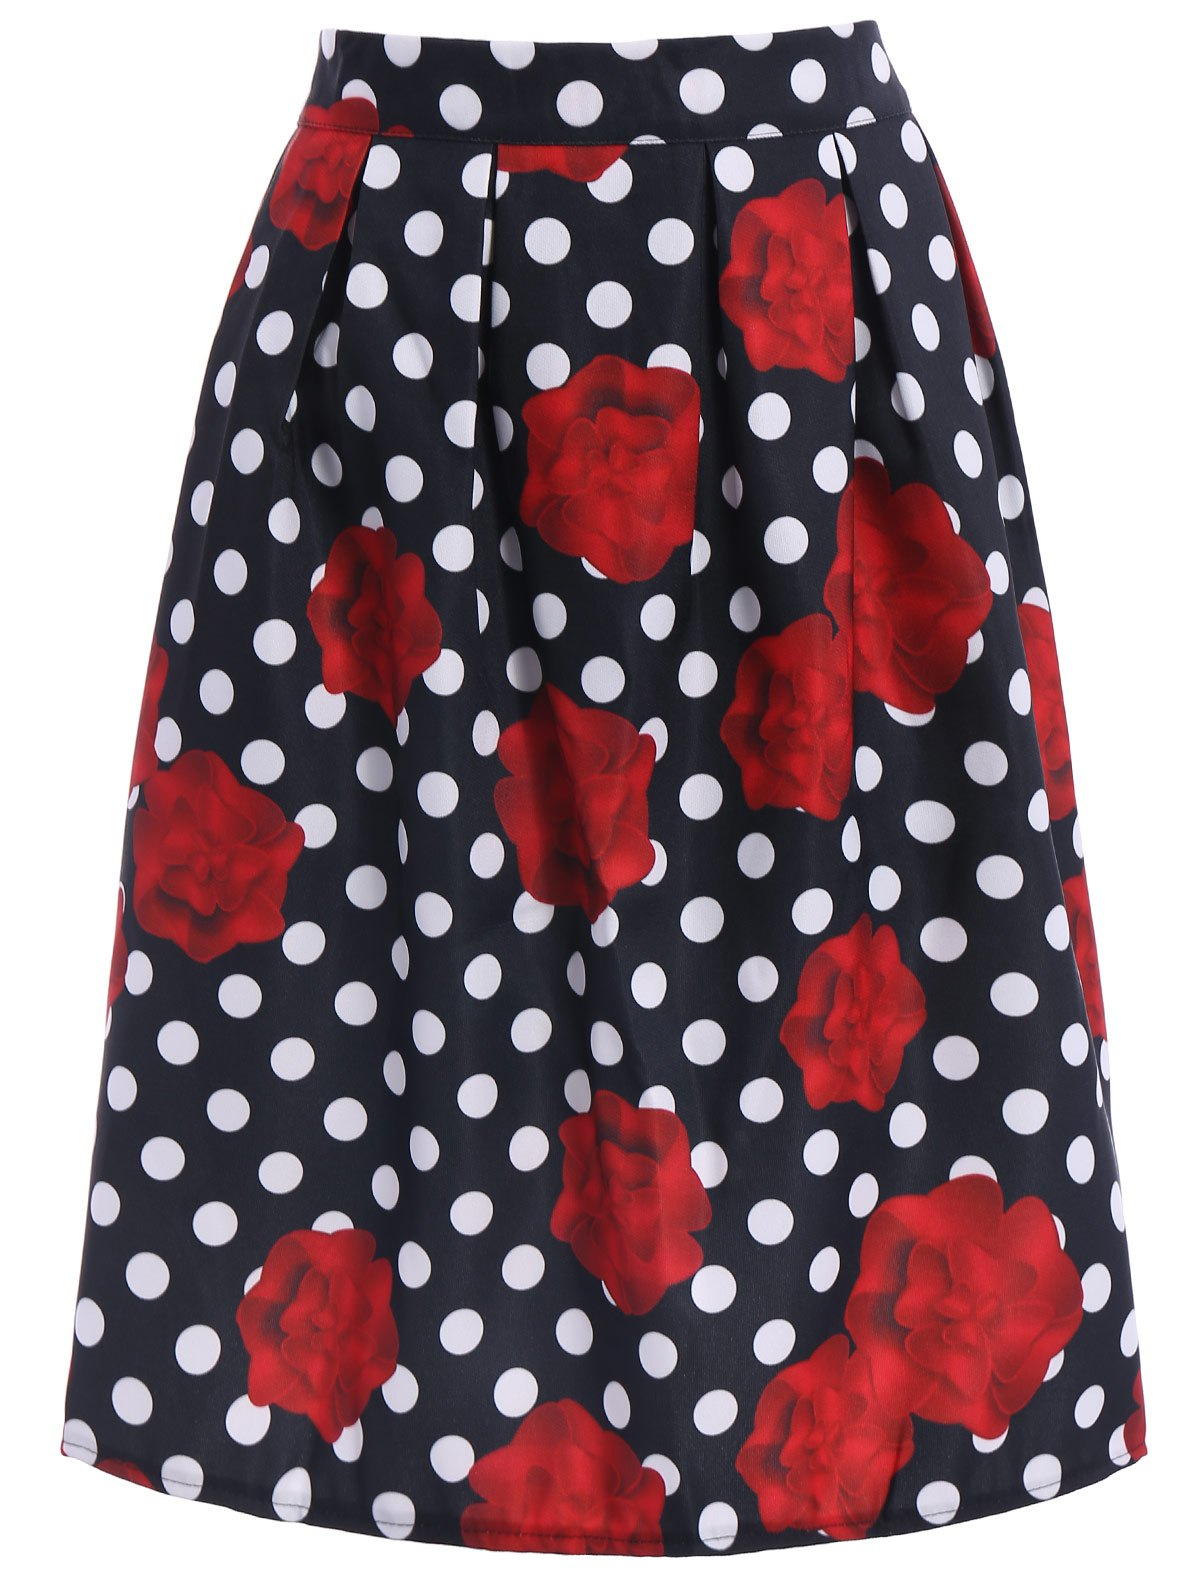 Ladylike High-Waisted A-Line Roses Print Women's Midi Skirt - BLACK/WHITE/RED L